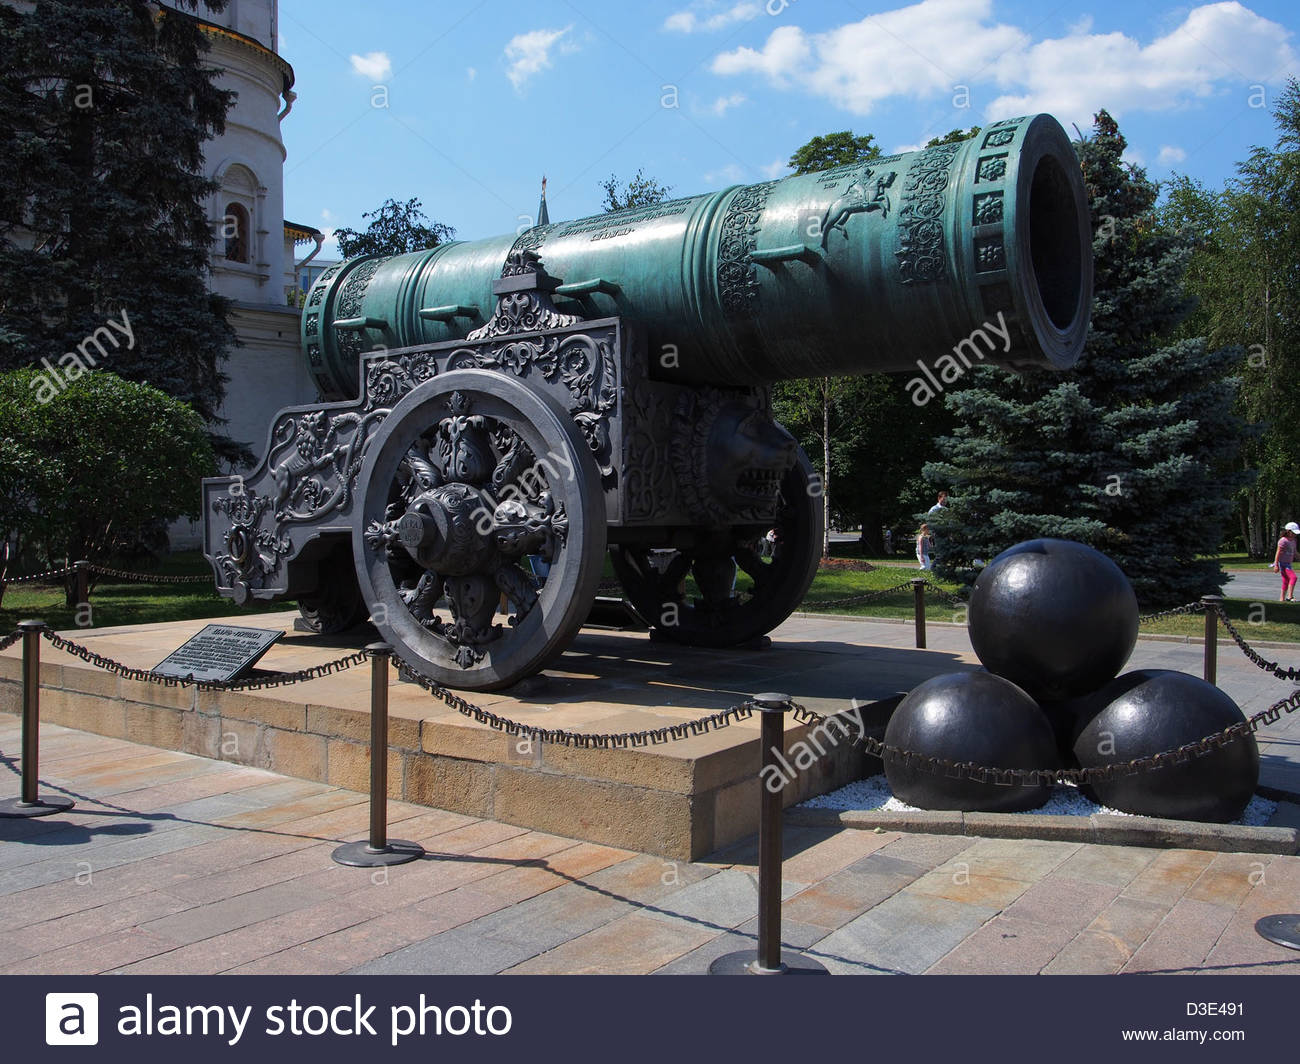 Tsar Cannon Moscow, The Tsar Cannon at the Kremlin in Moscow, Russian Federation Stock ...